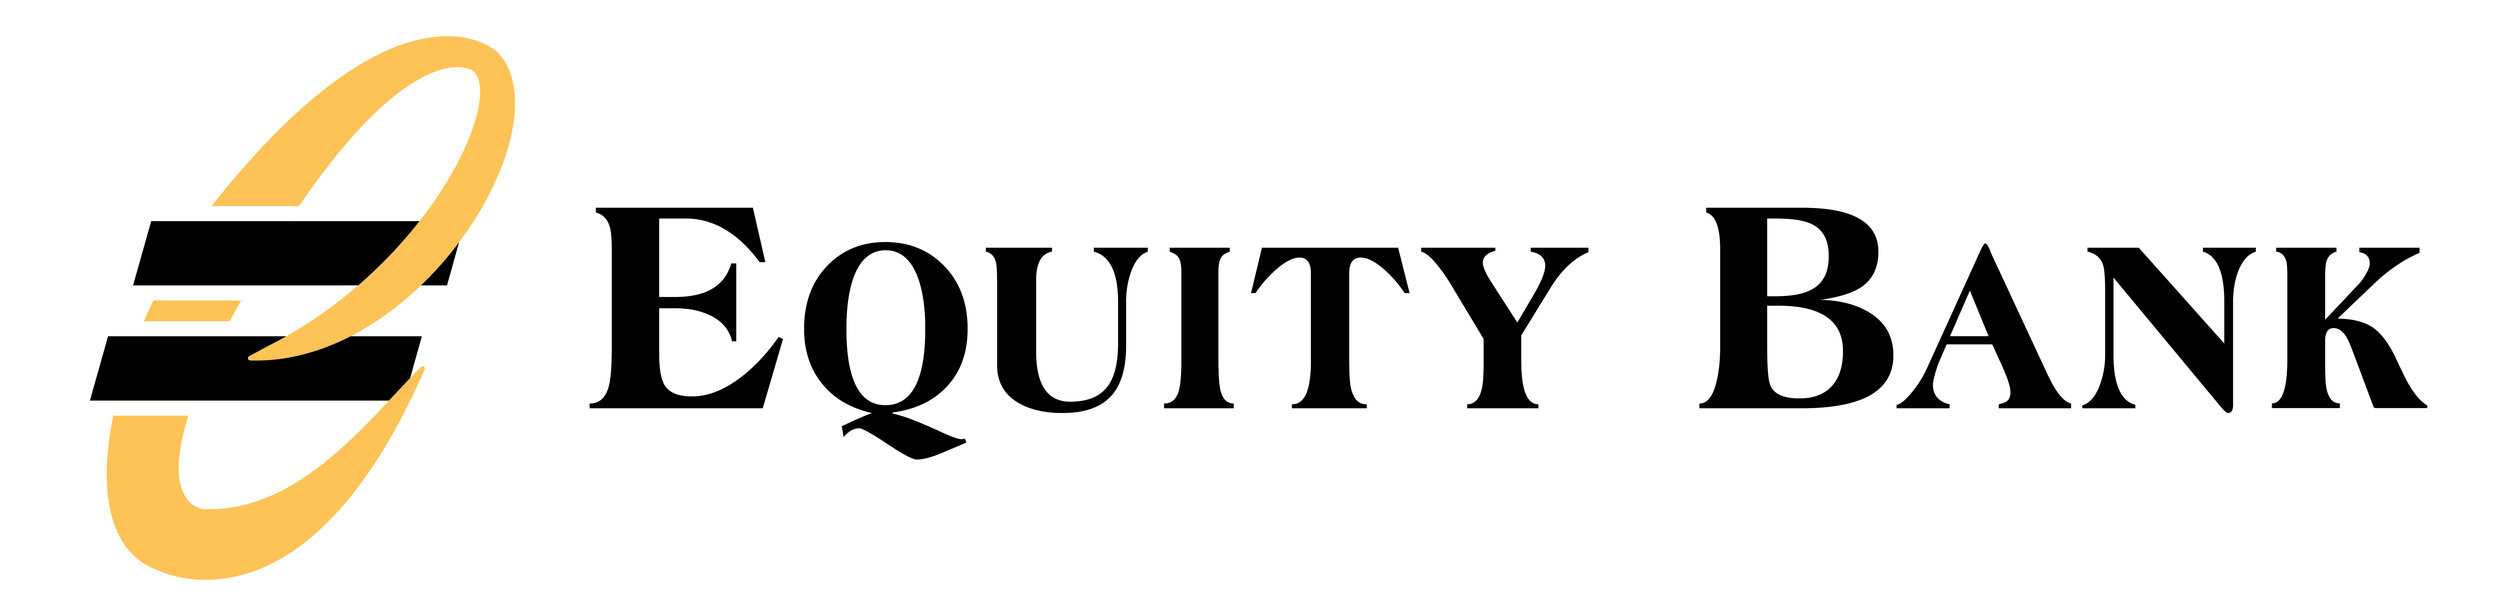 Equity Bank Logo - Web.jpg